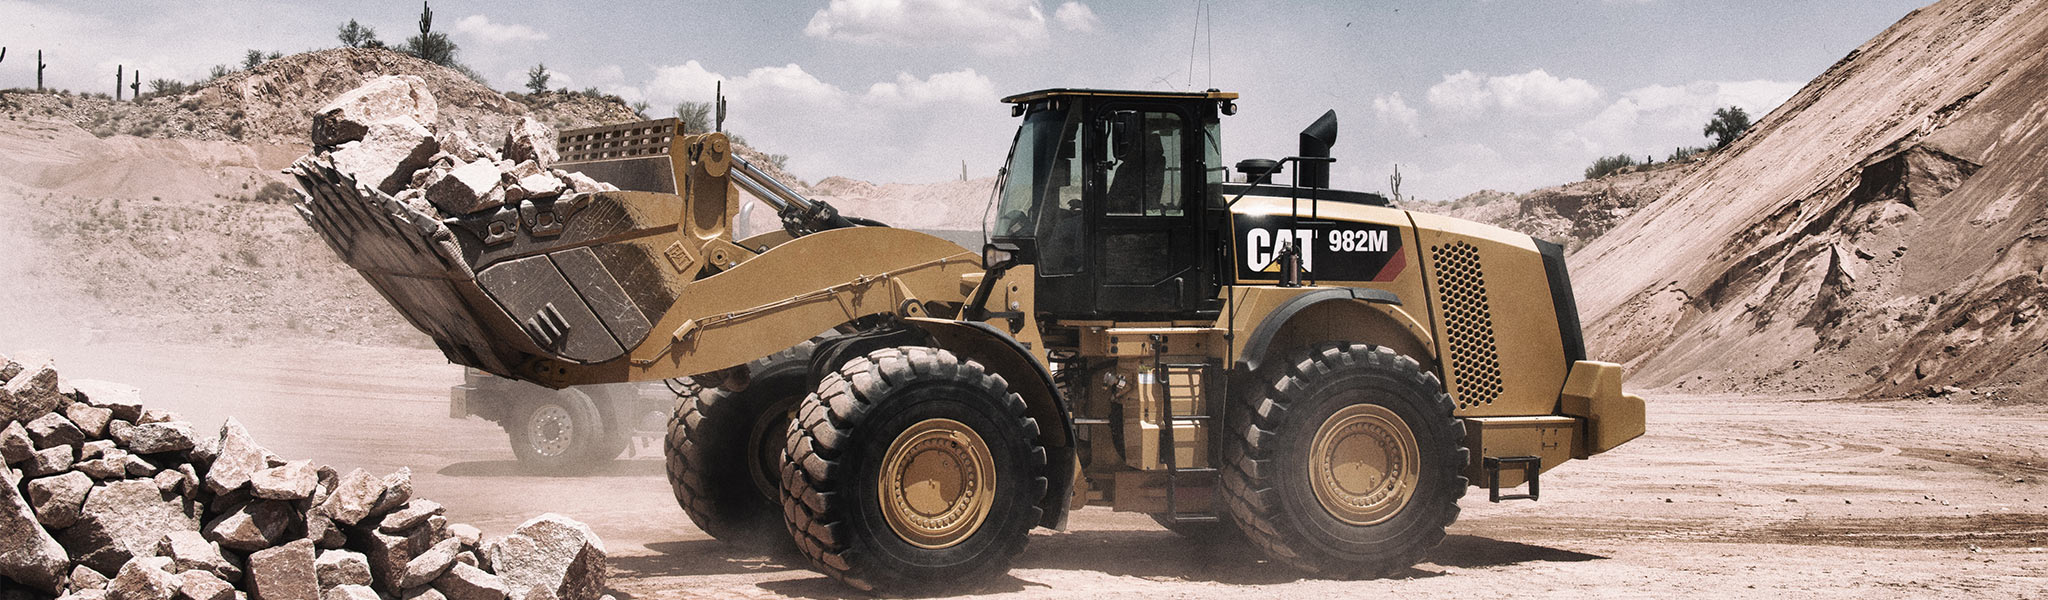 Mining Loader Operator Loretta Mine site Mount Isa QLD